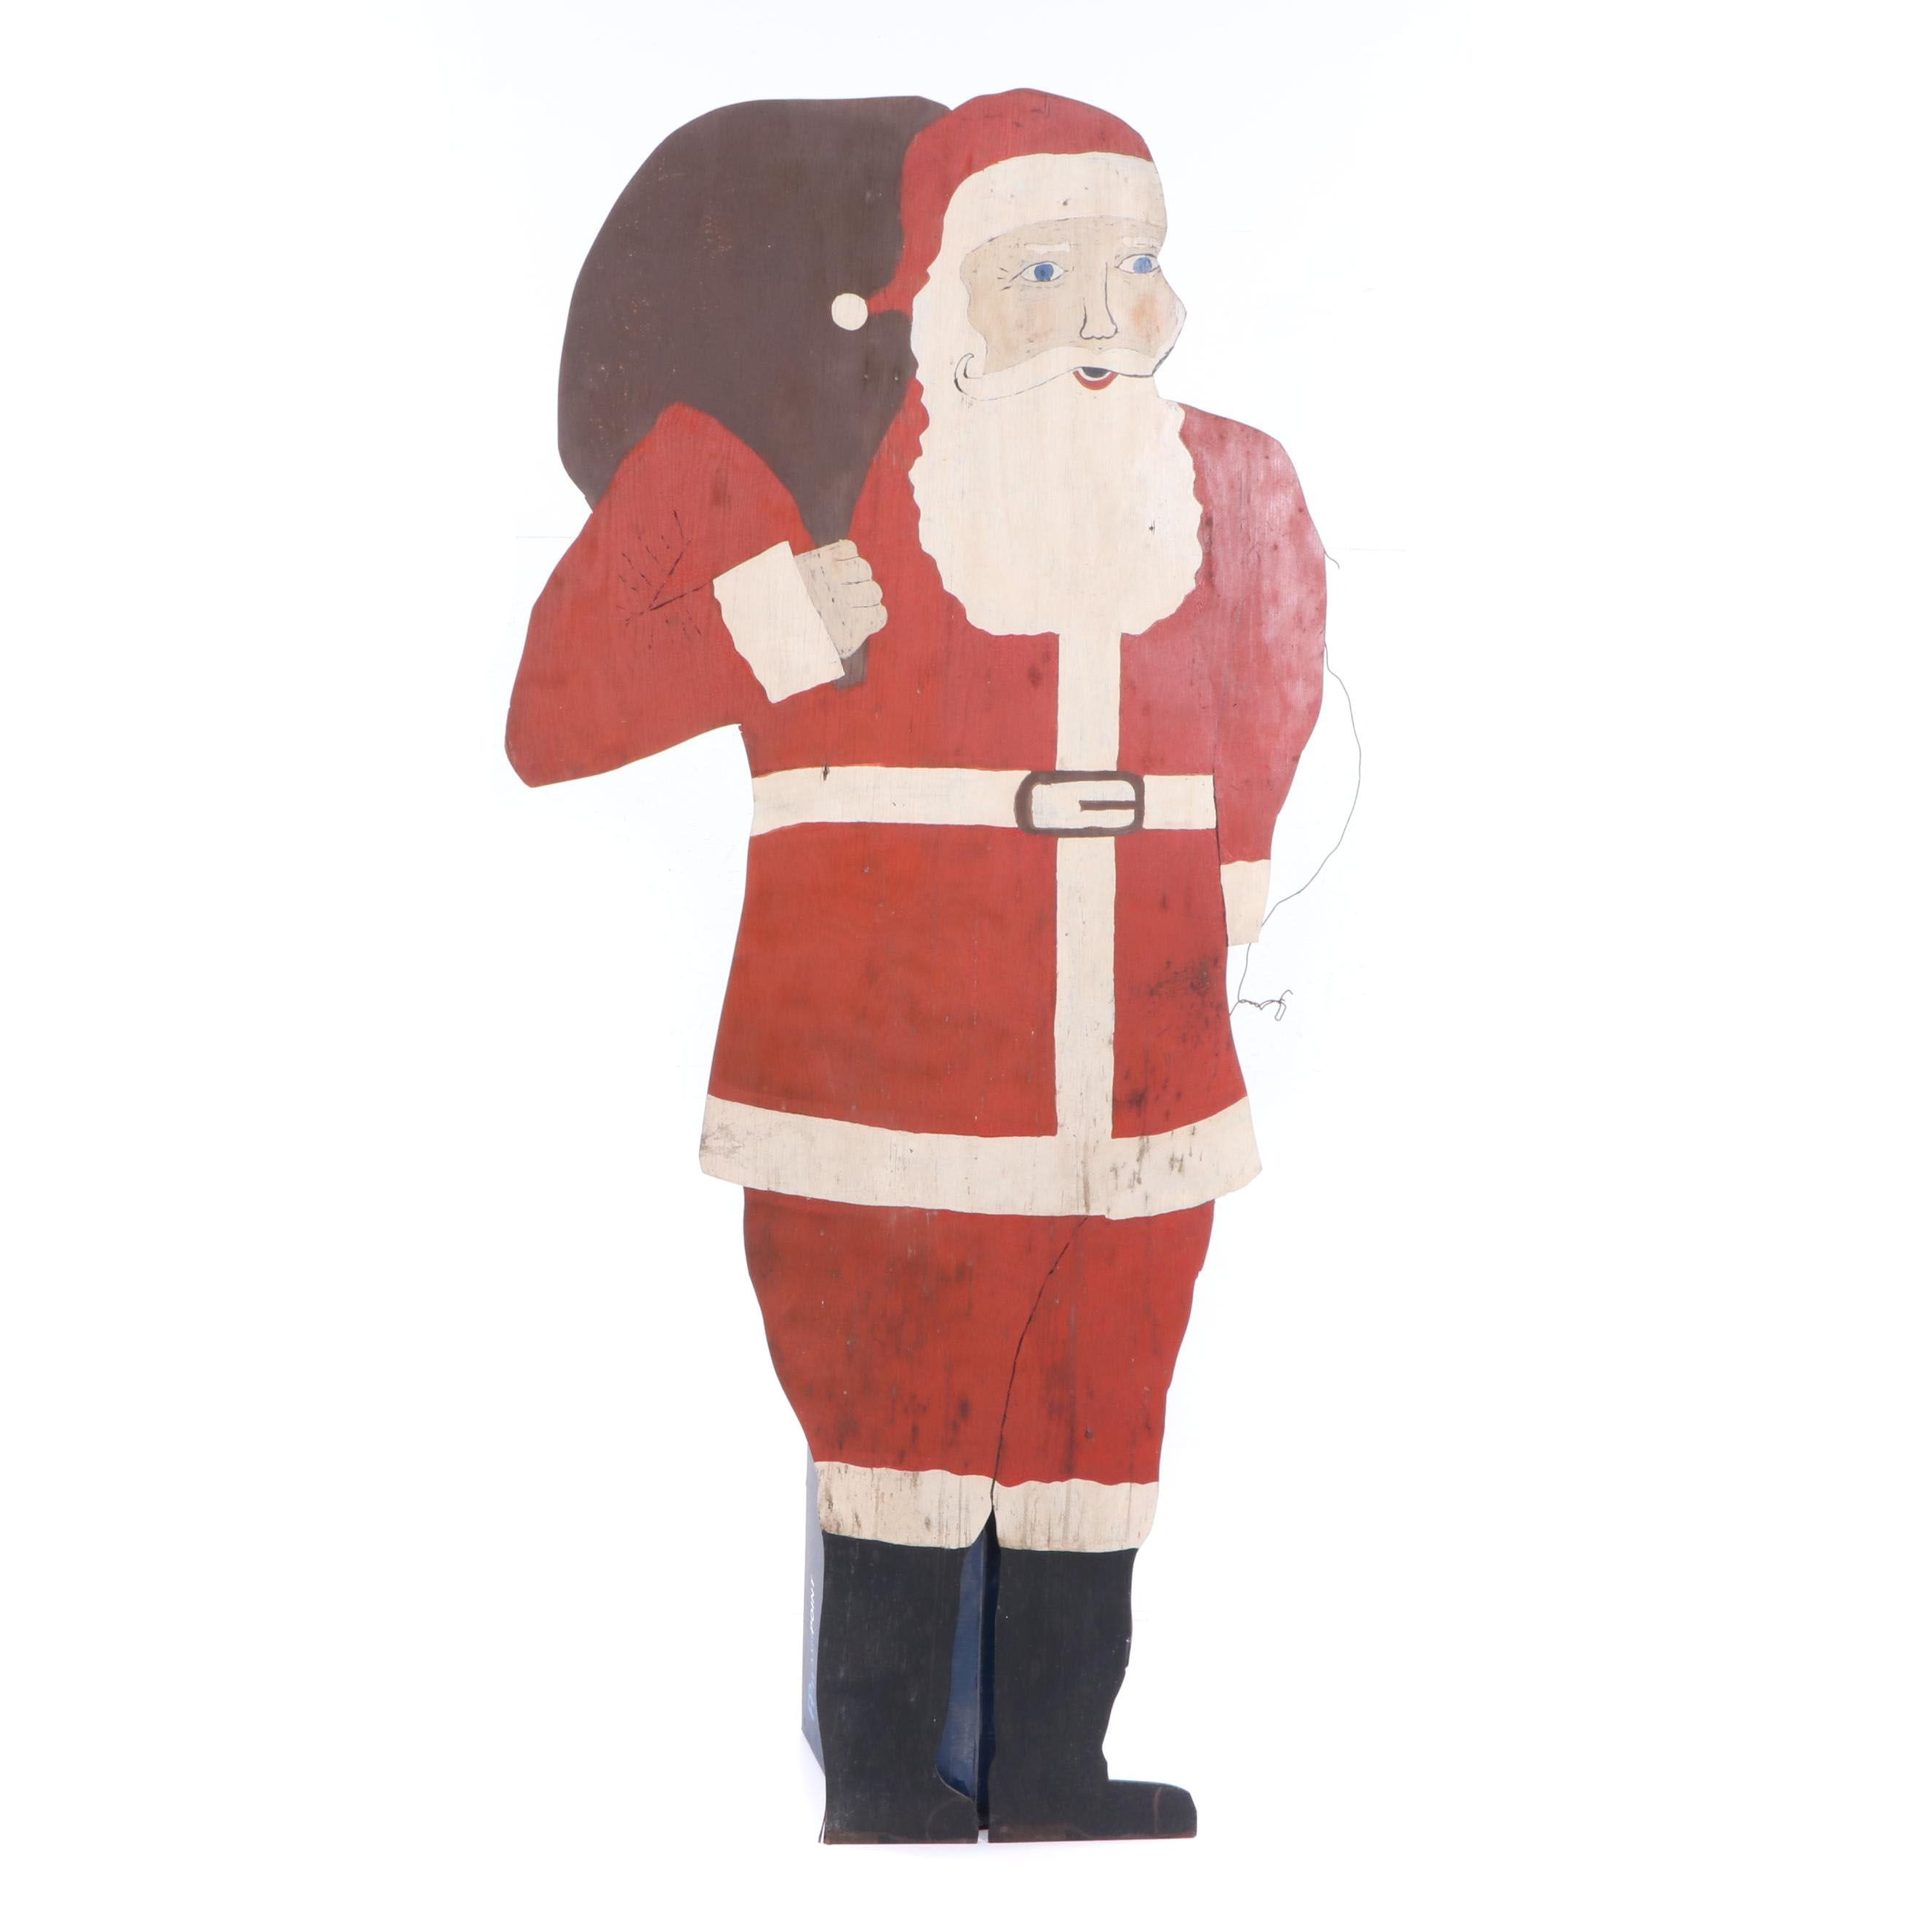 Vintage Handcrafted Life-Size Santa Claus Wooden Display